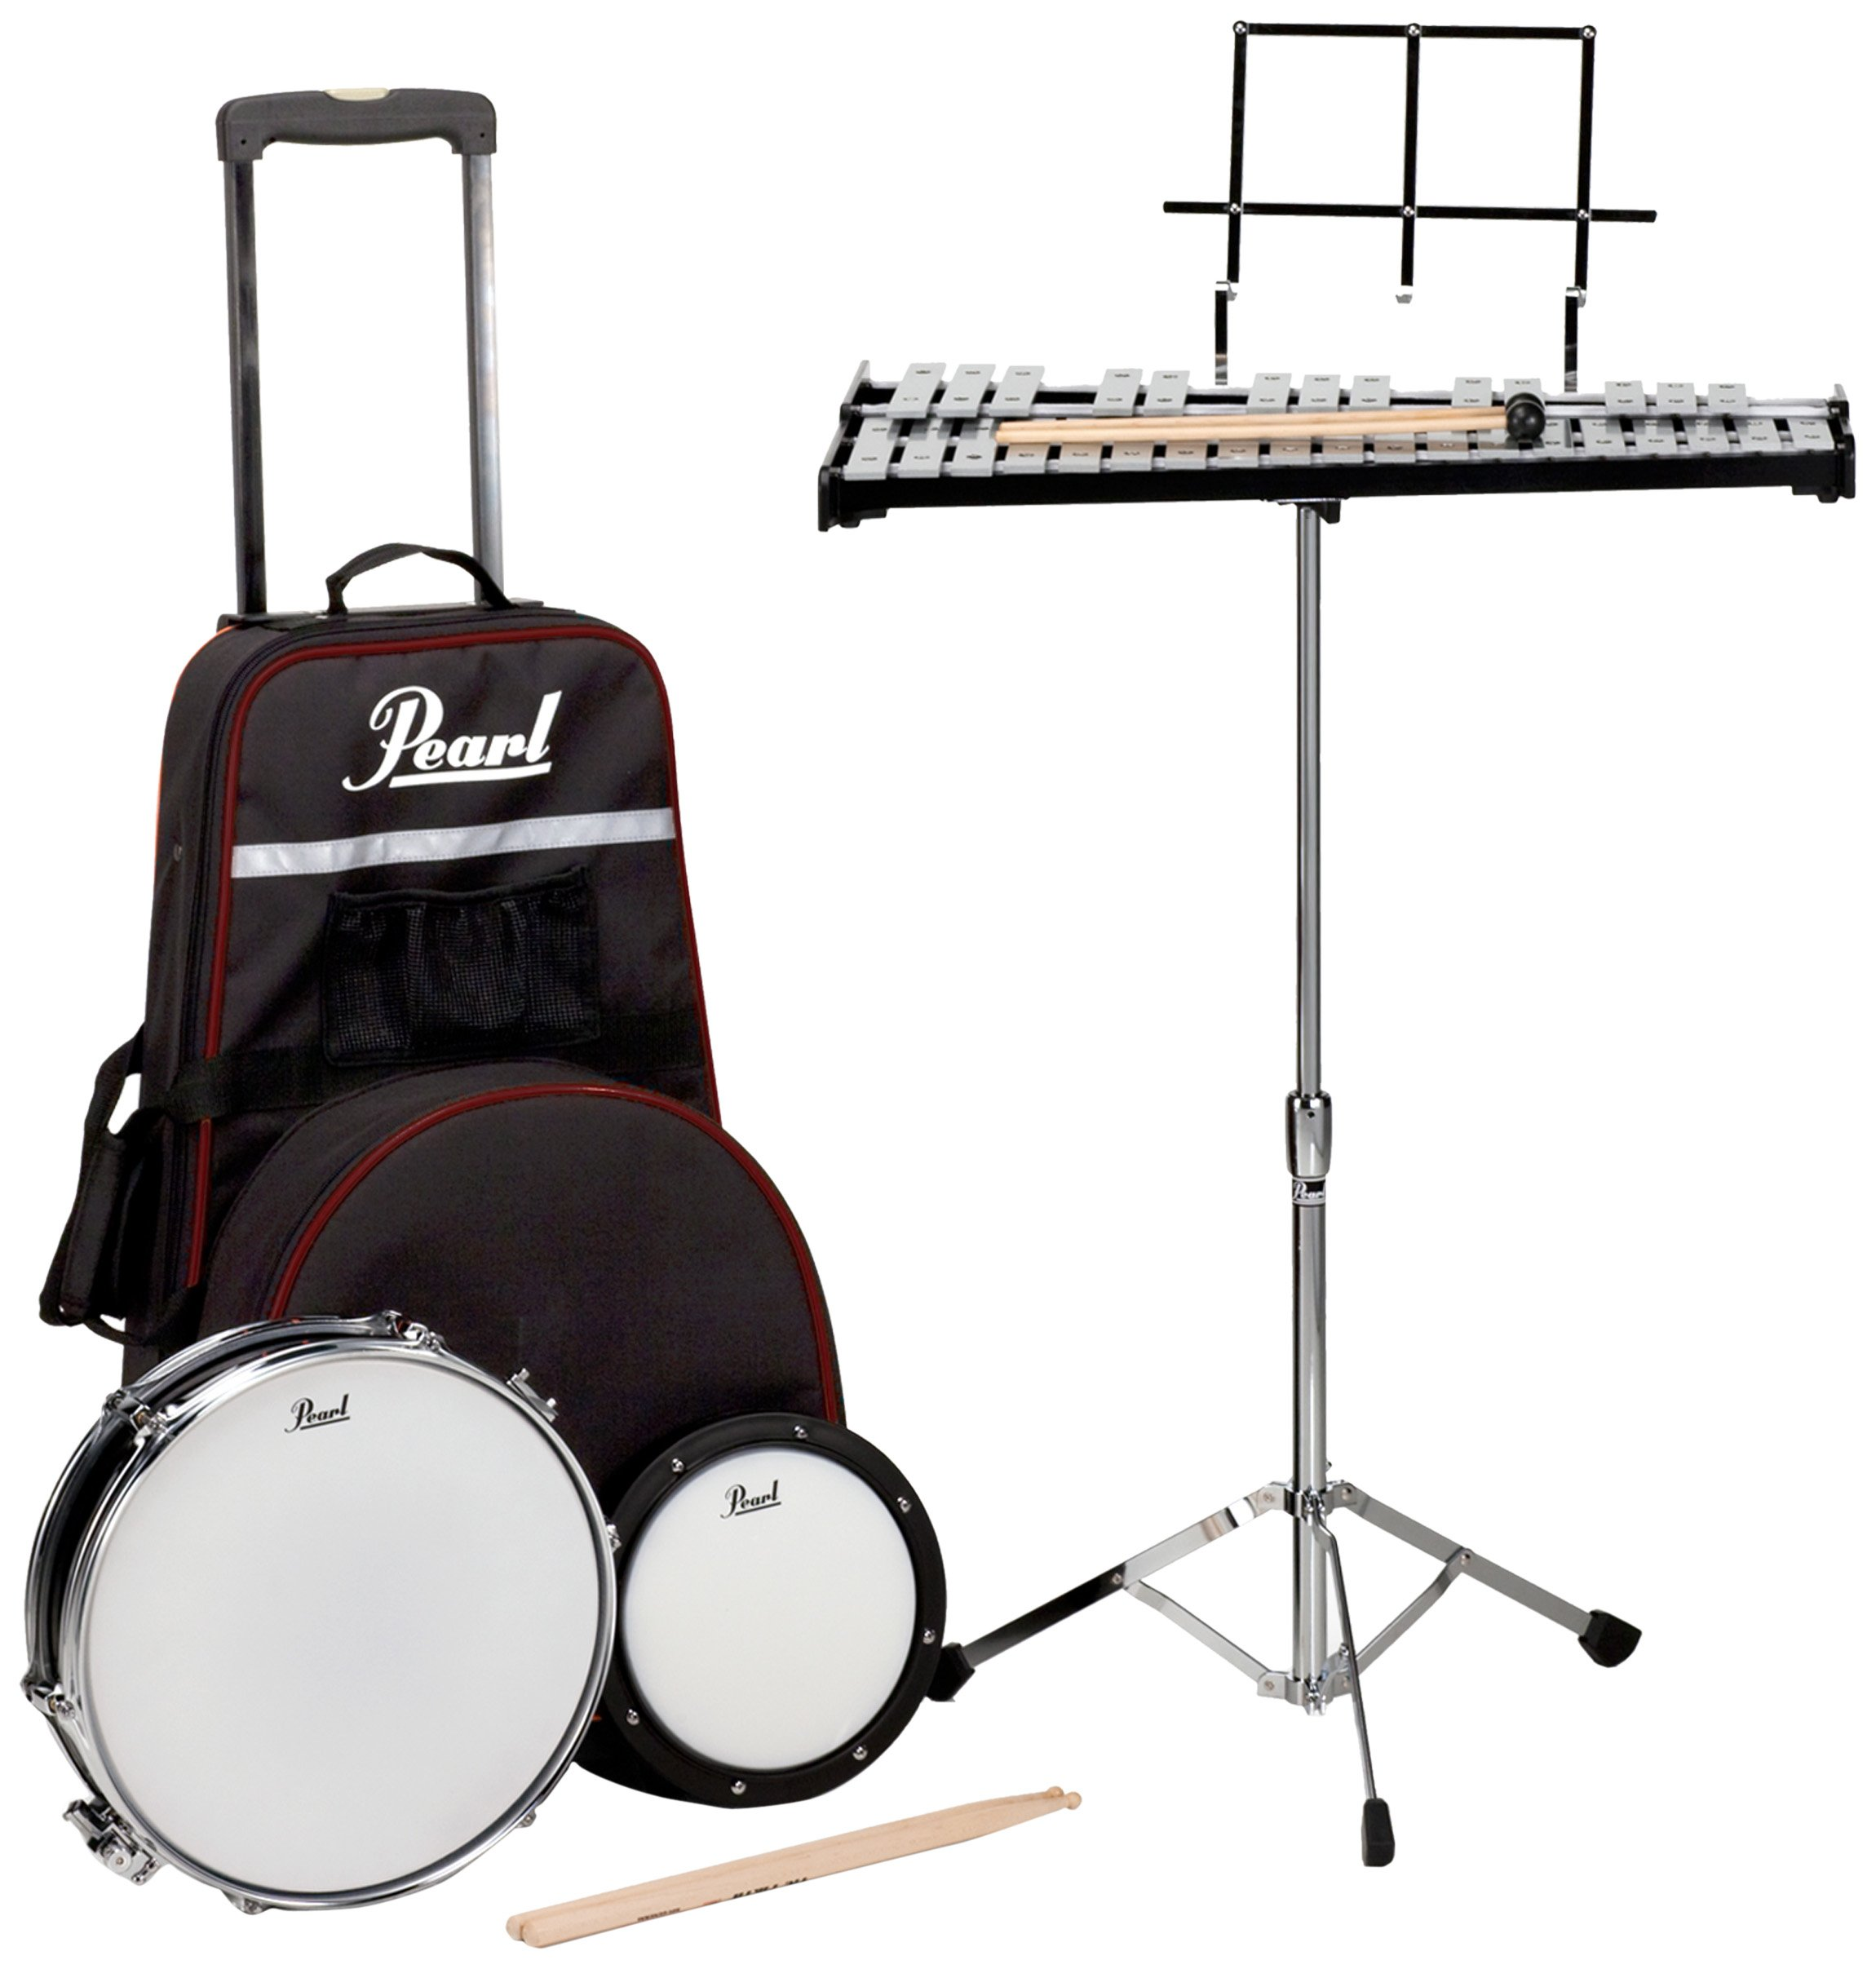 Pearl PL900C Educational Kits Snare & Bell Kit by Pearl